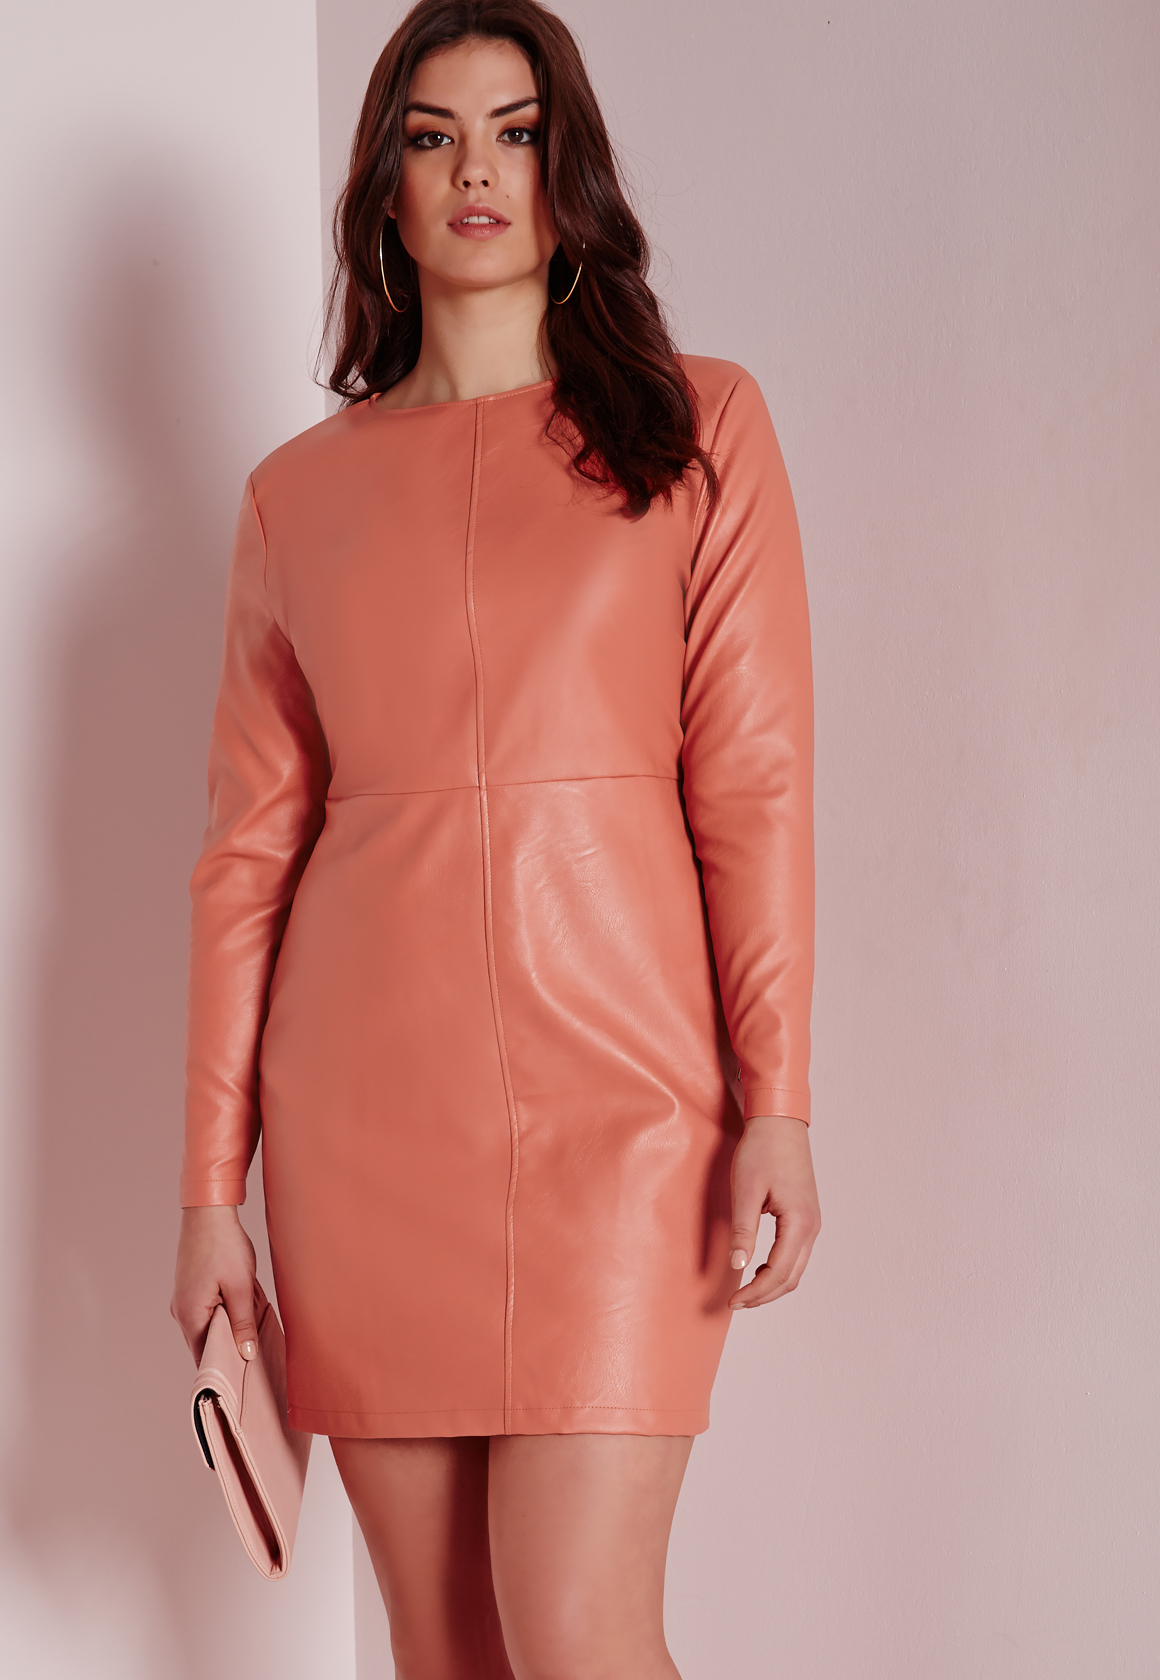 Lyst - Missguided Plus Size Faux Leather Dress Pink In Pink